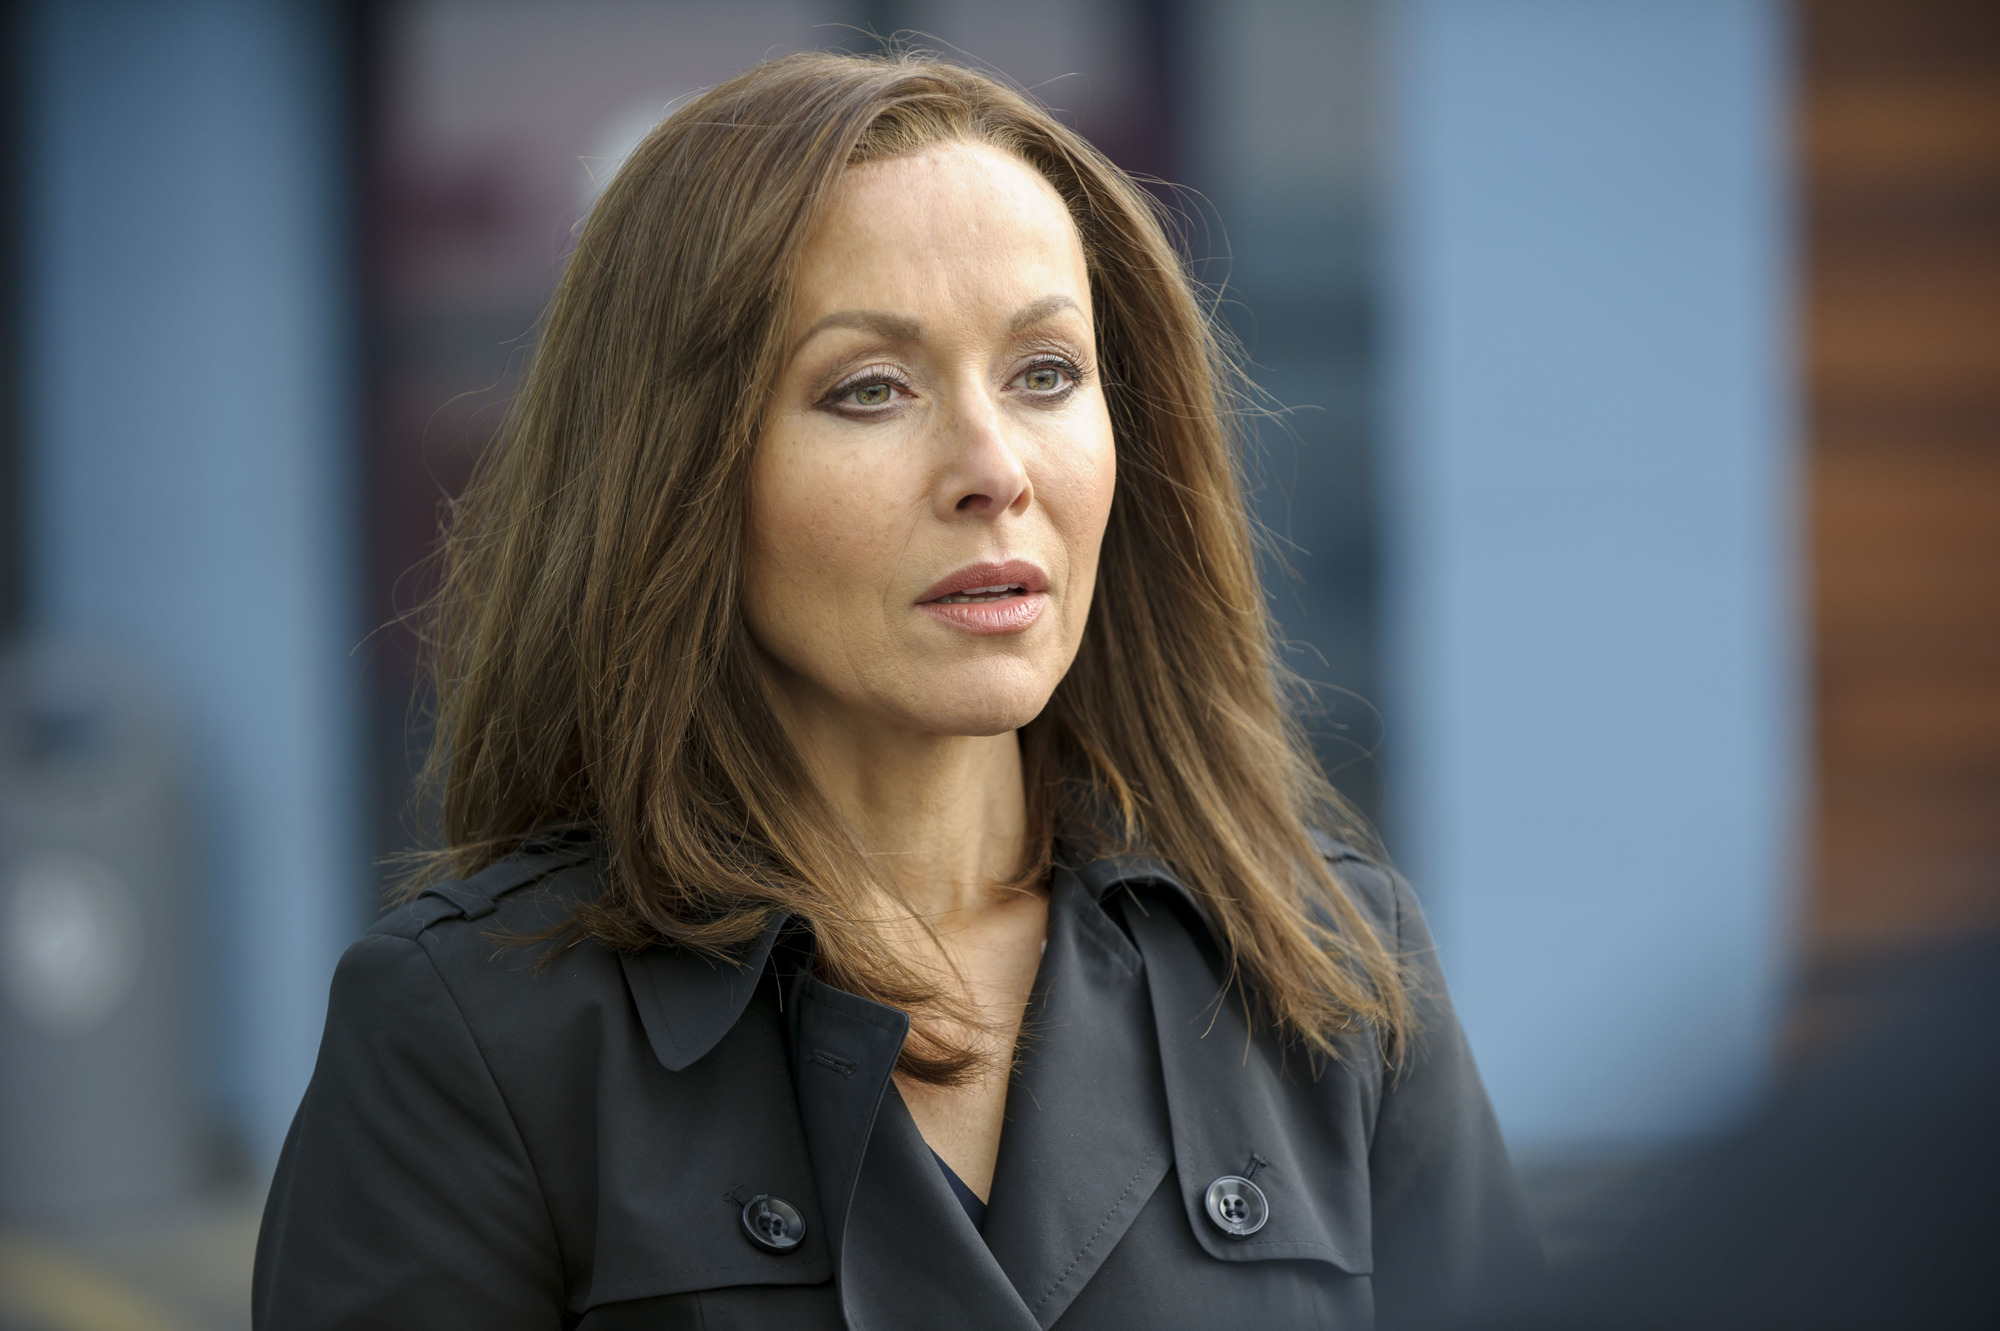 Casualty star Amanda Mealing opens up about PTSD battle triggered from heartbreaking storyline